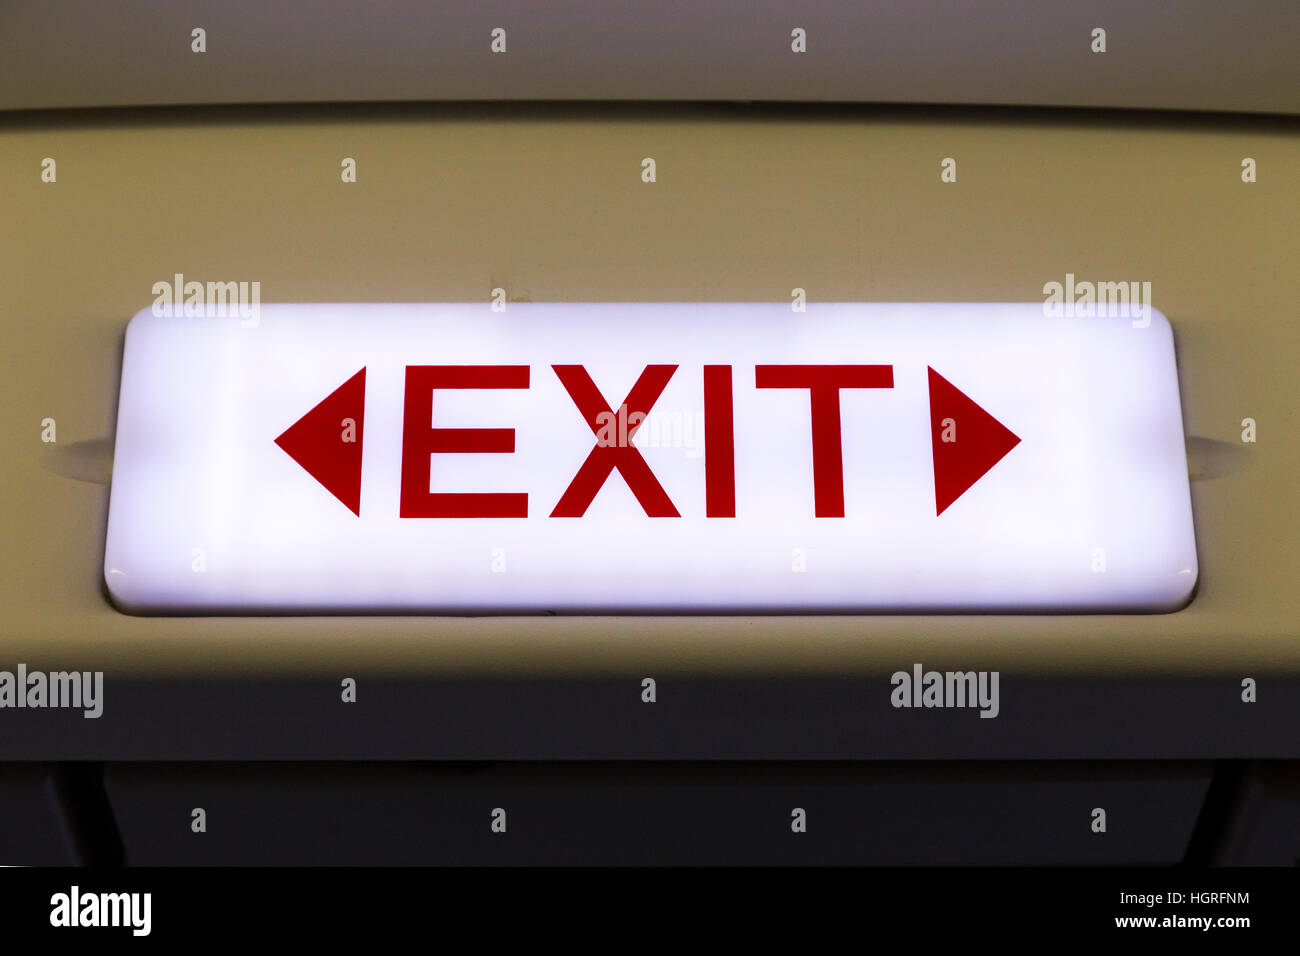 EXIT door sign on an Airbus A320 airplane Air plane aeroplane aircraft - Stock Image